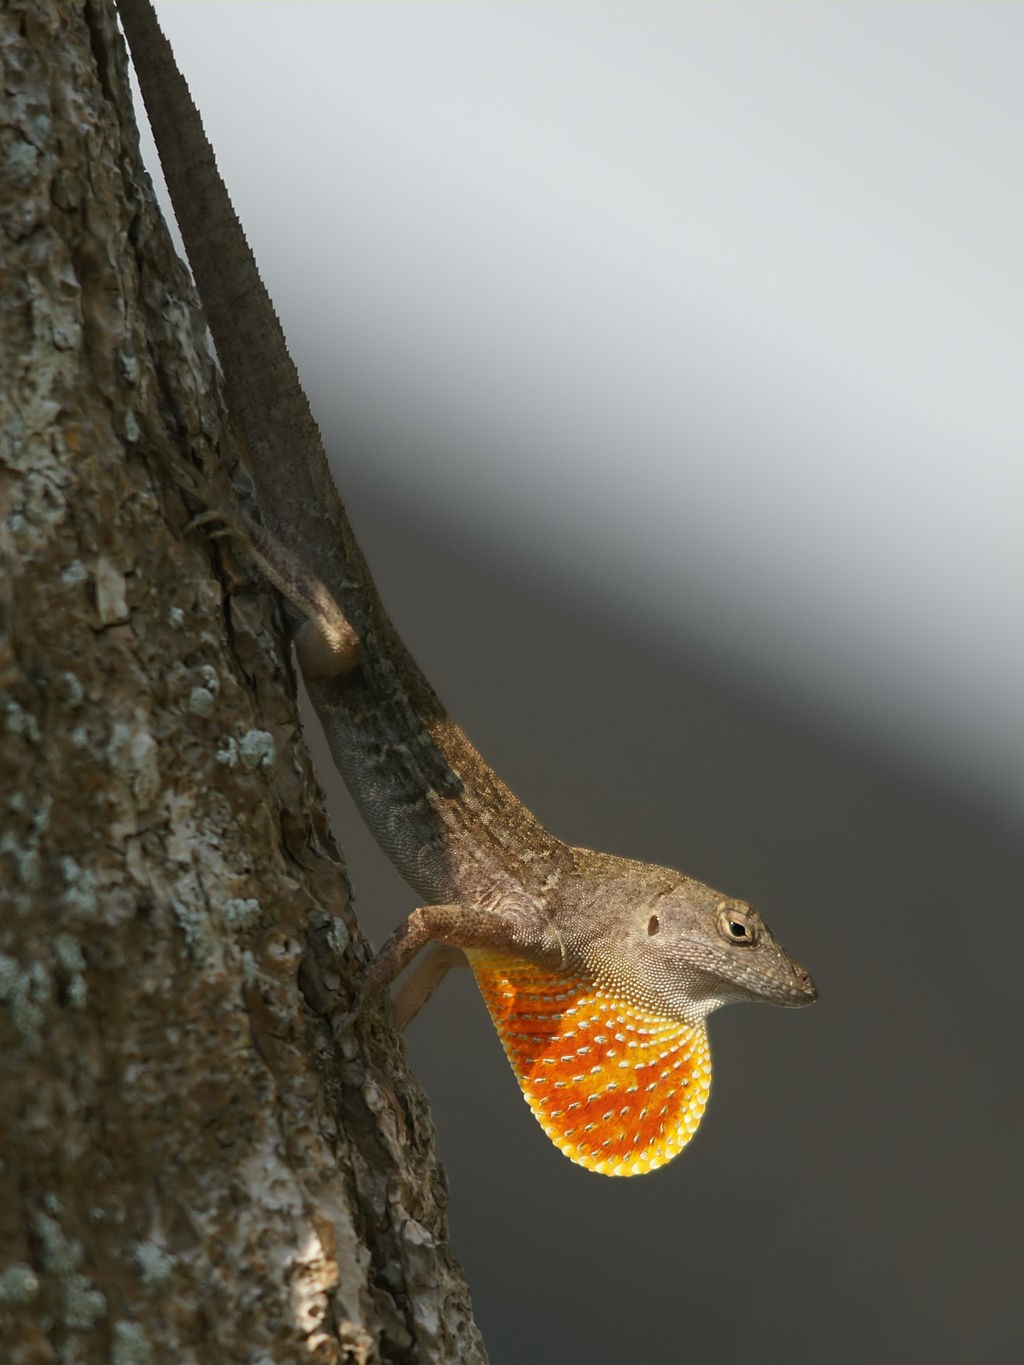 A brown anole displaying. (Wikipedia, Creative Commons photo)